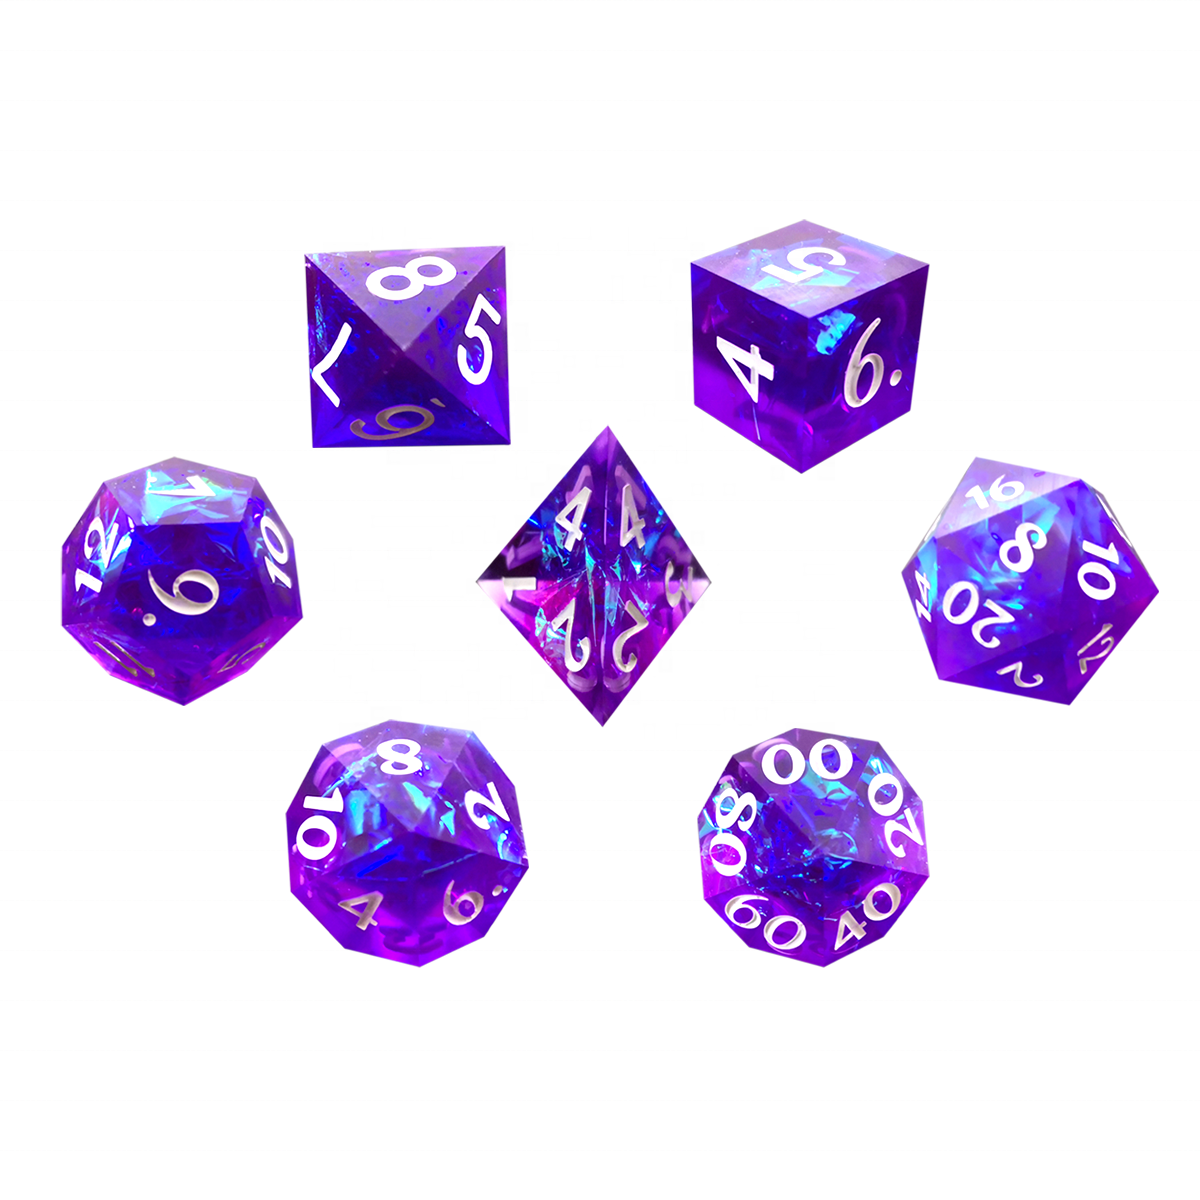 For Classical Blue Purple Polyhedral Sharp Resin Dice Set D4 D6 D8 D10 D12 D20 D% With For DND Board Game